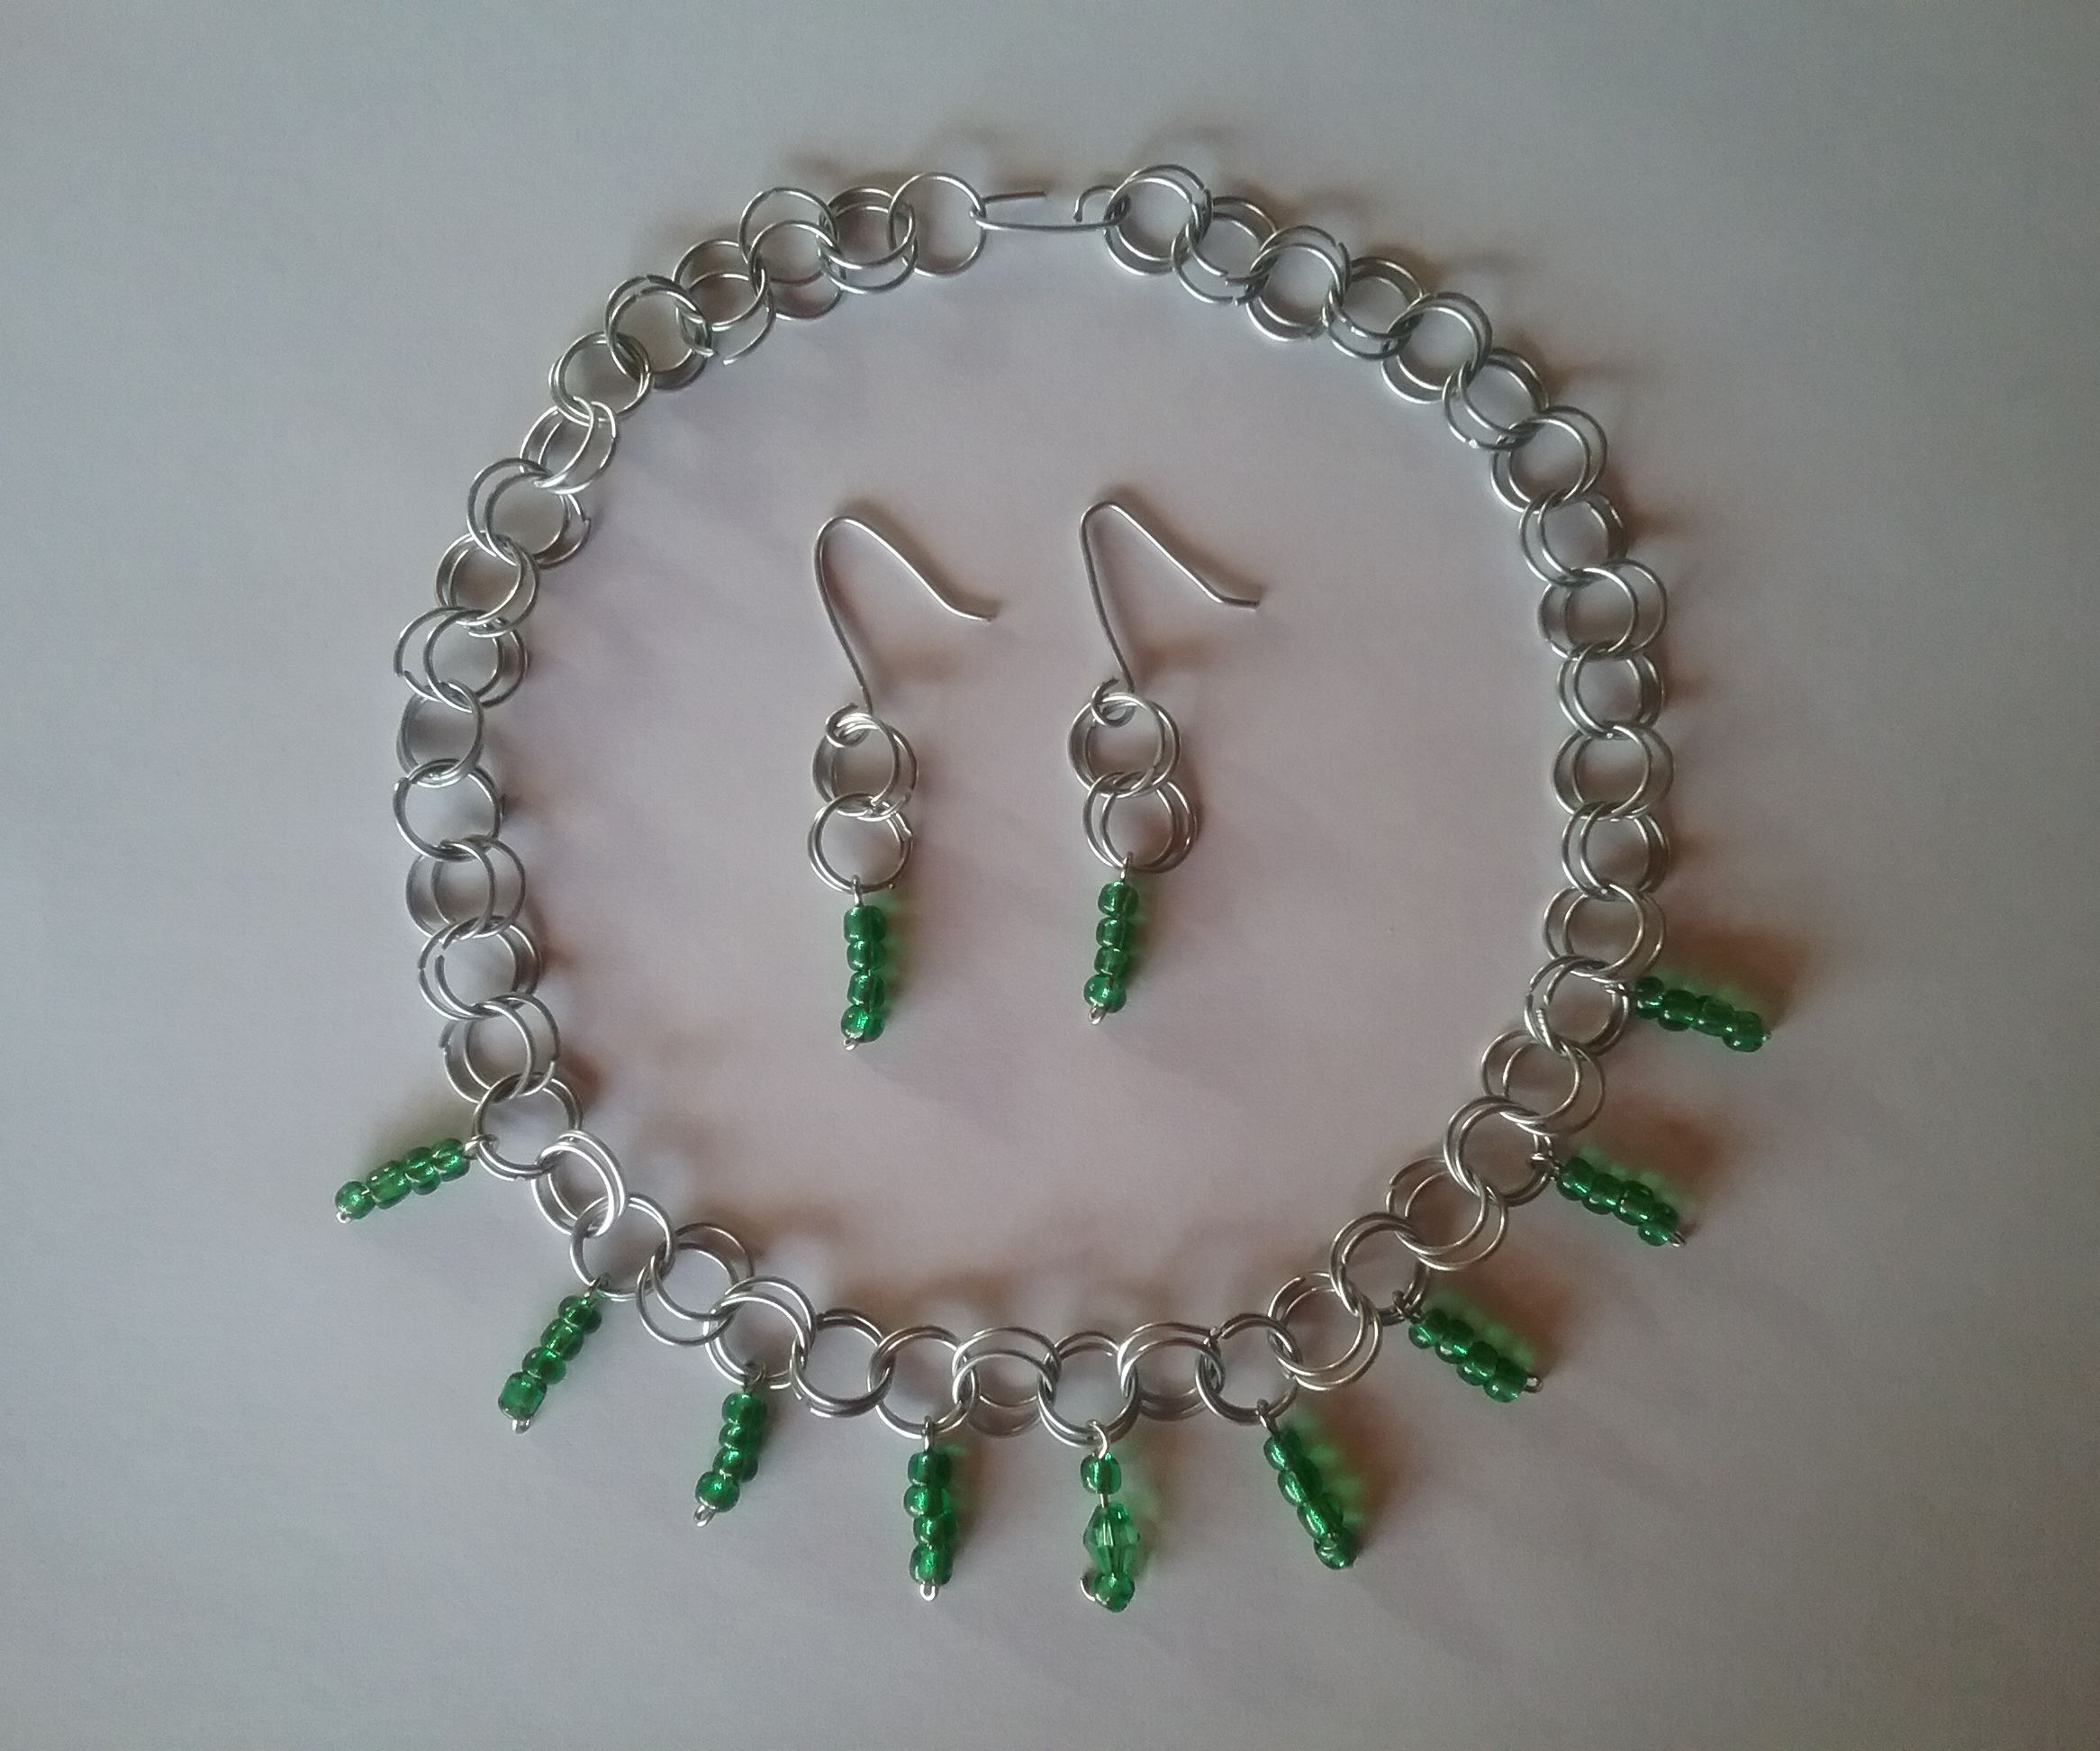 Emerald Chainmail Choker and Earrings